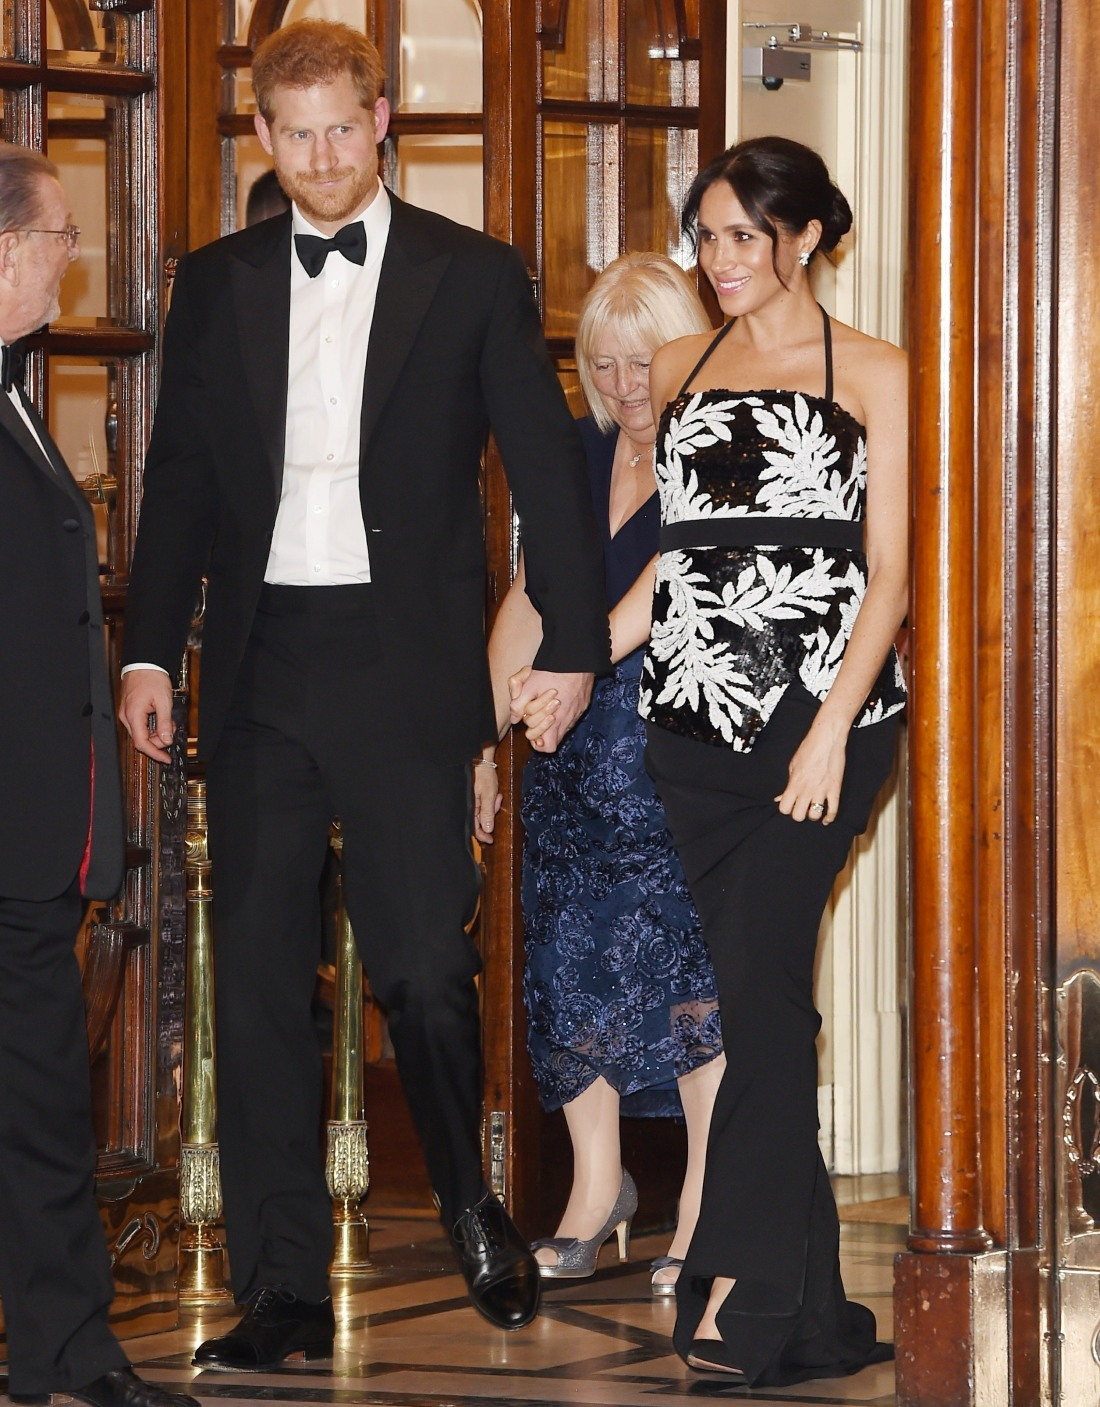 Prince Harry and pregnant Meghan Markle leave The Royal Variety Performance 2018